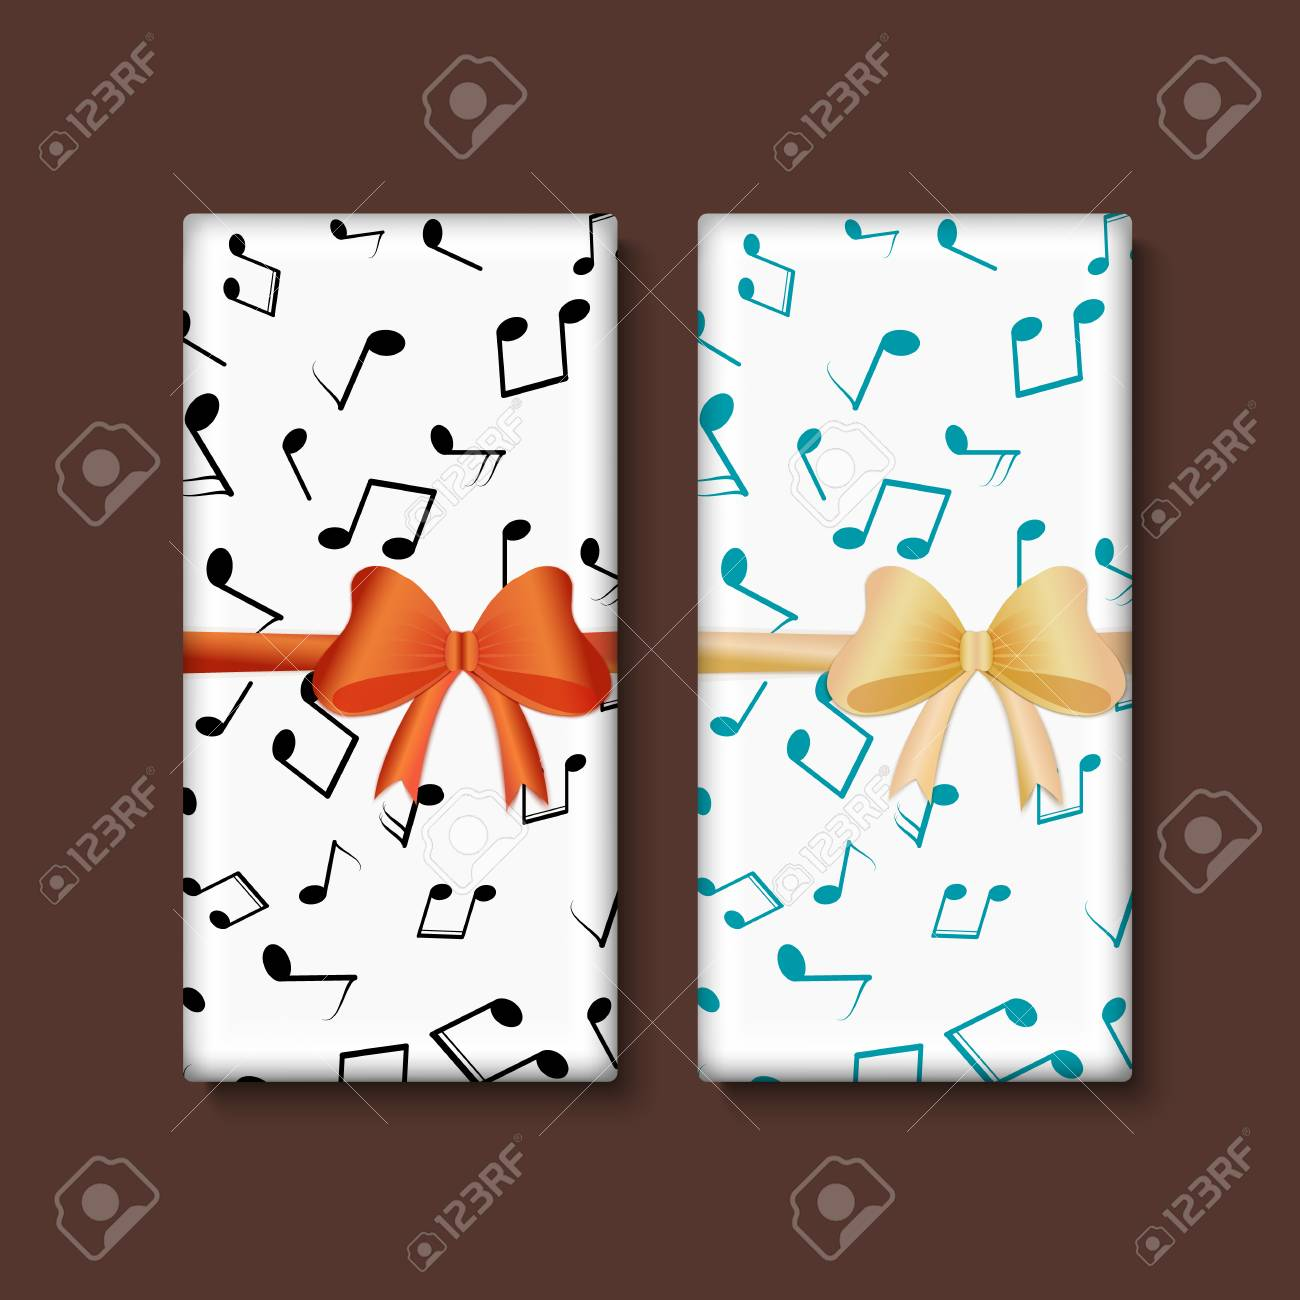 Vector Set Of Chocolate Bar Package Designs With Musical Notes